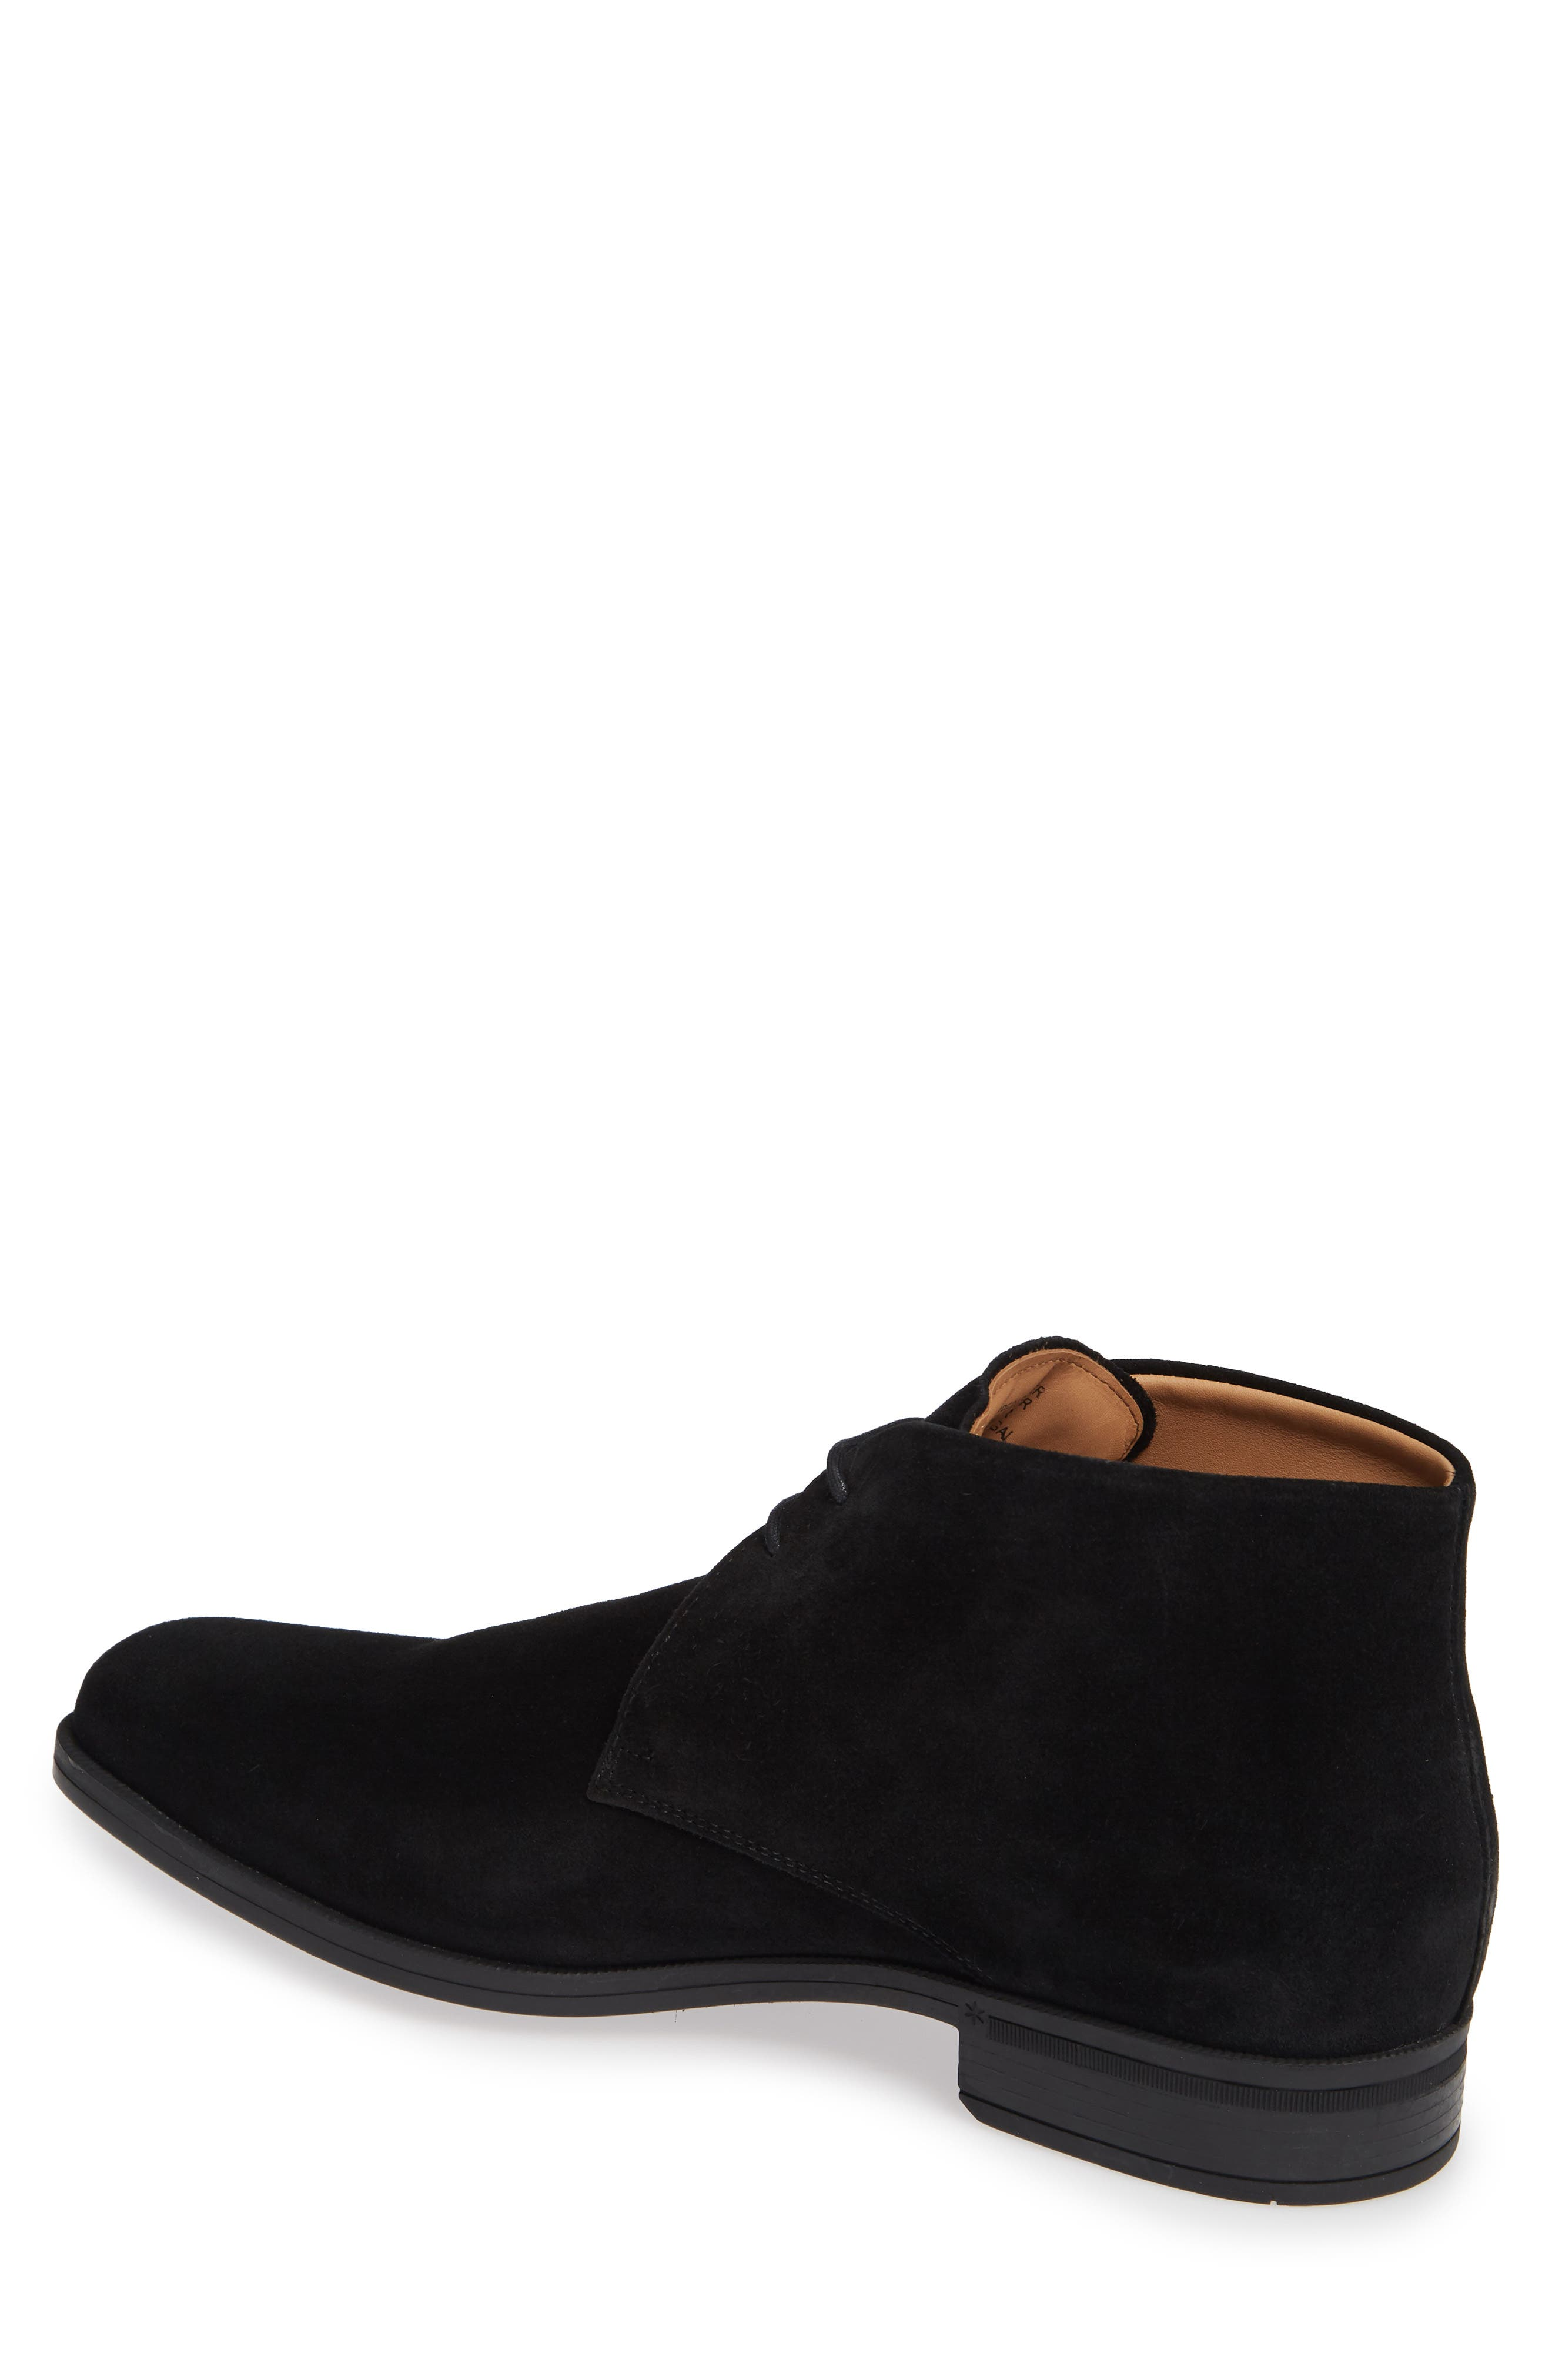 Iden Chukka Boot,                             Alternate thumbnail 2, color,                             BLACK SUEDE